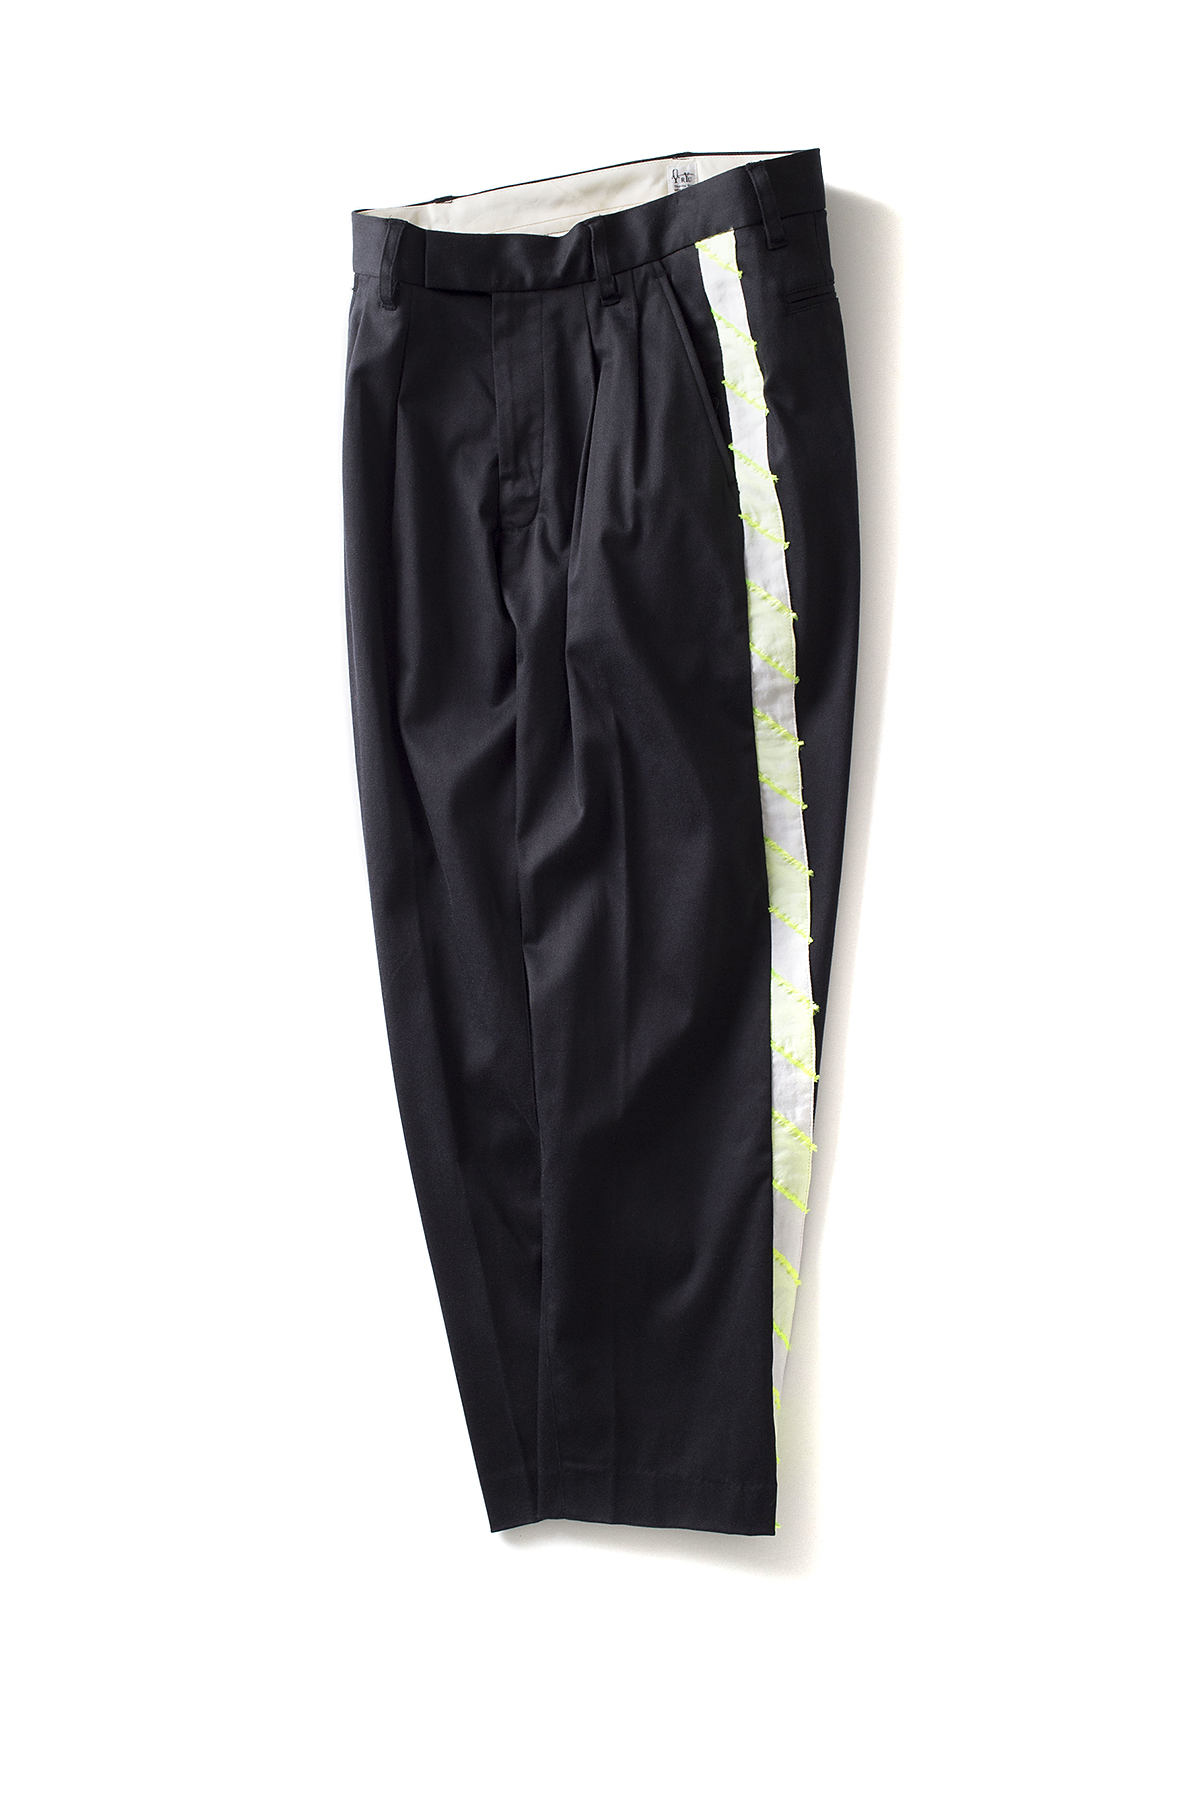 RYU : Two-tuck Tapered Pants With Fringe (Black)